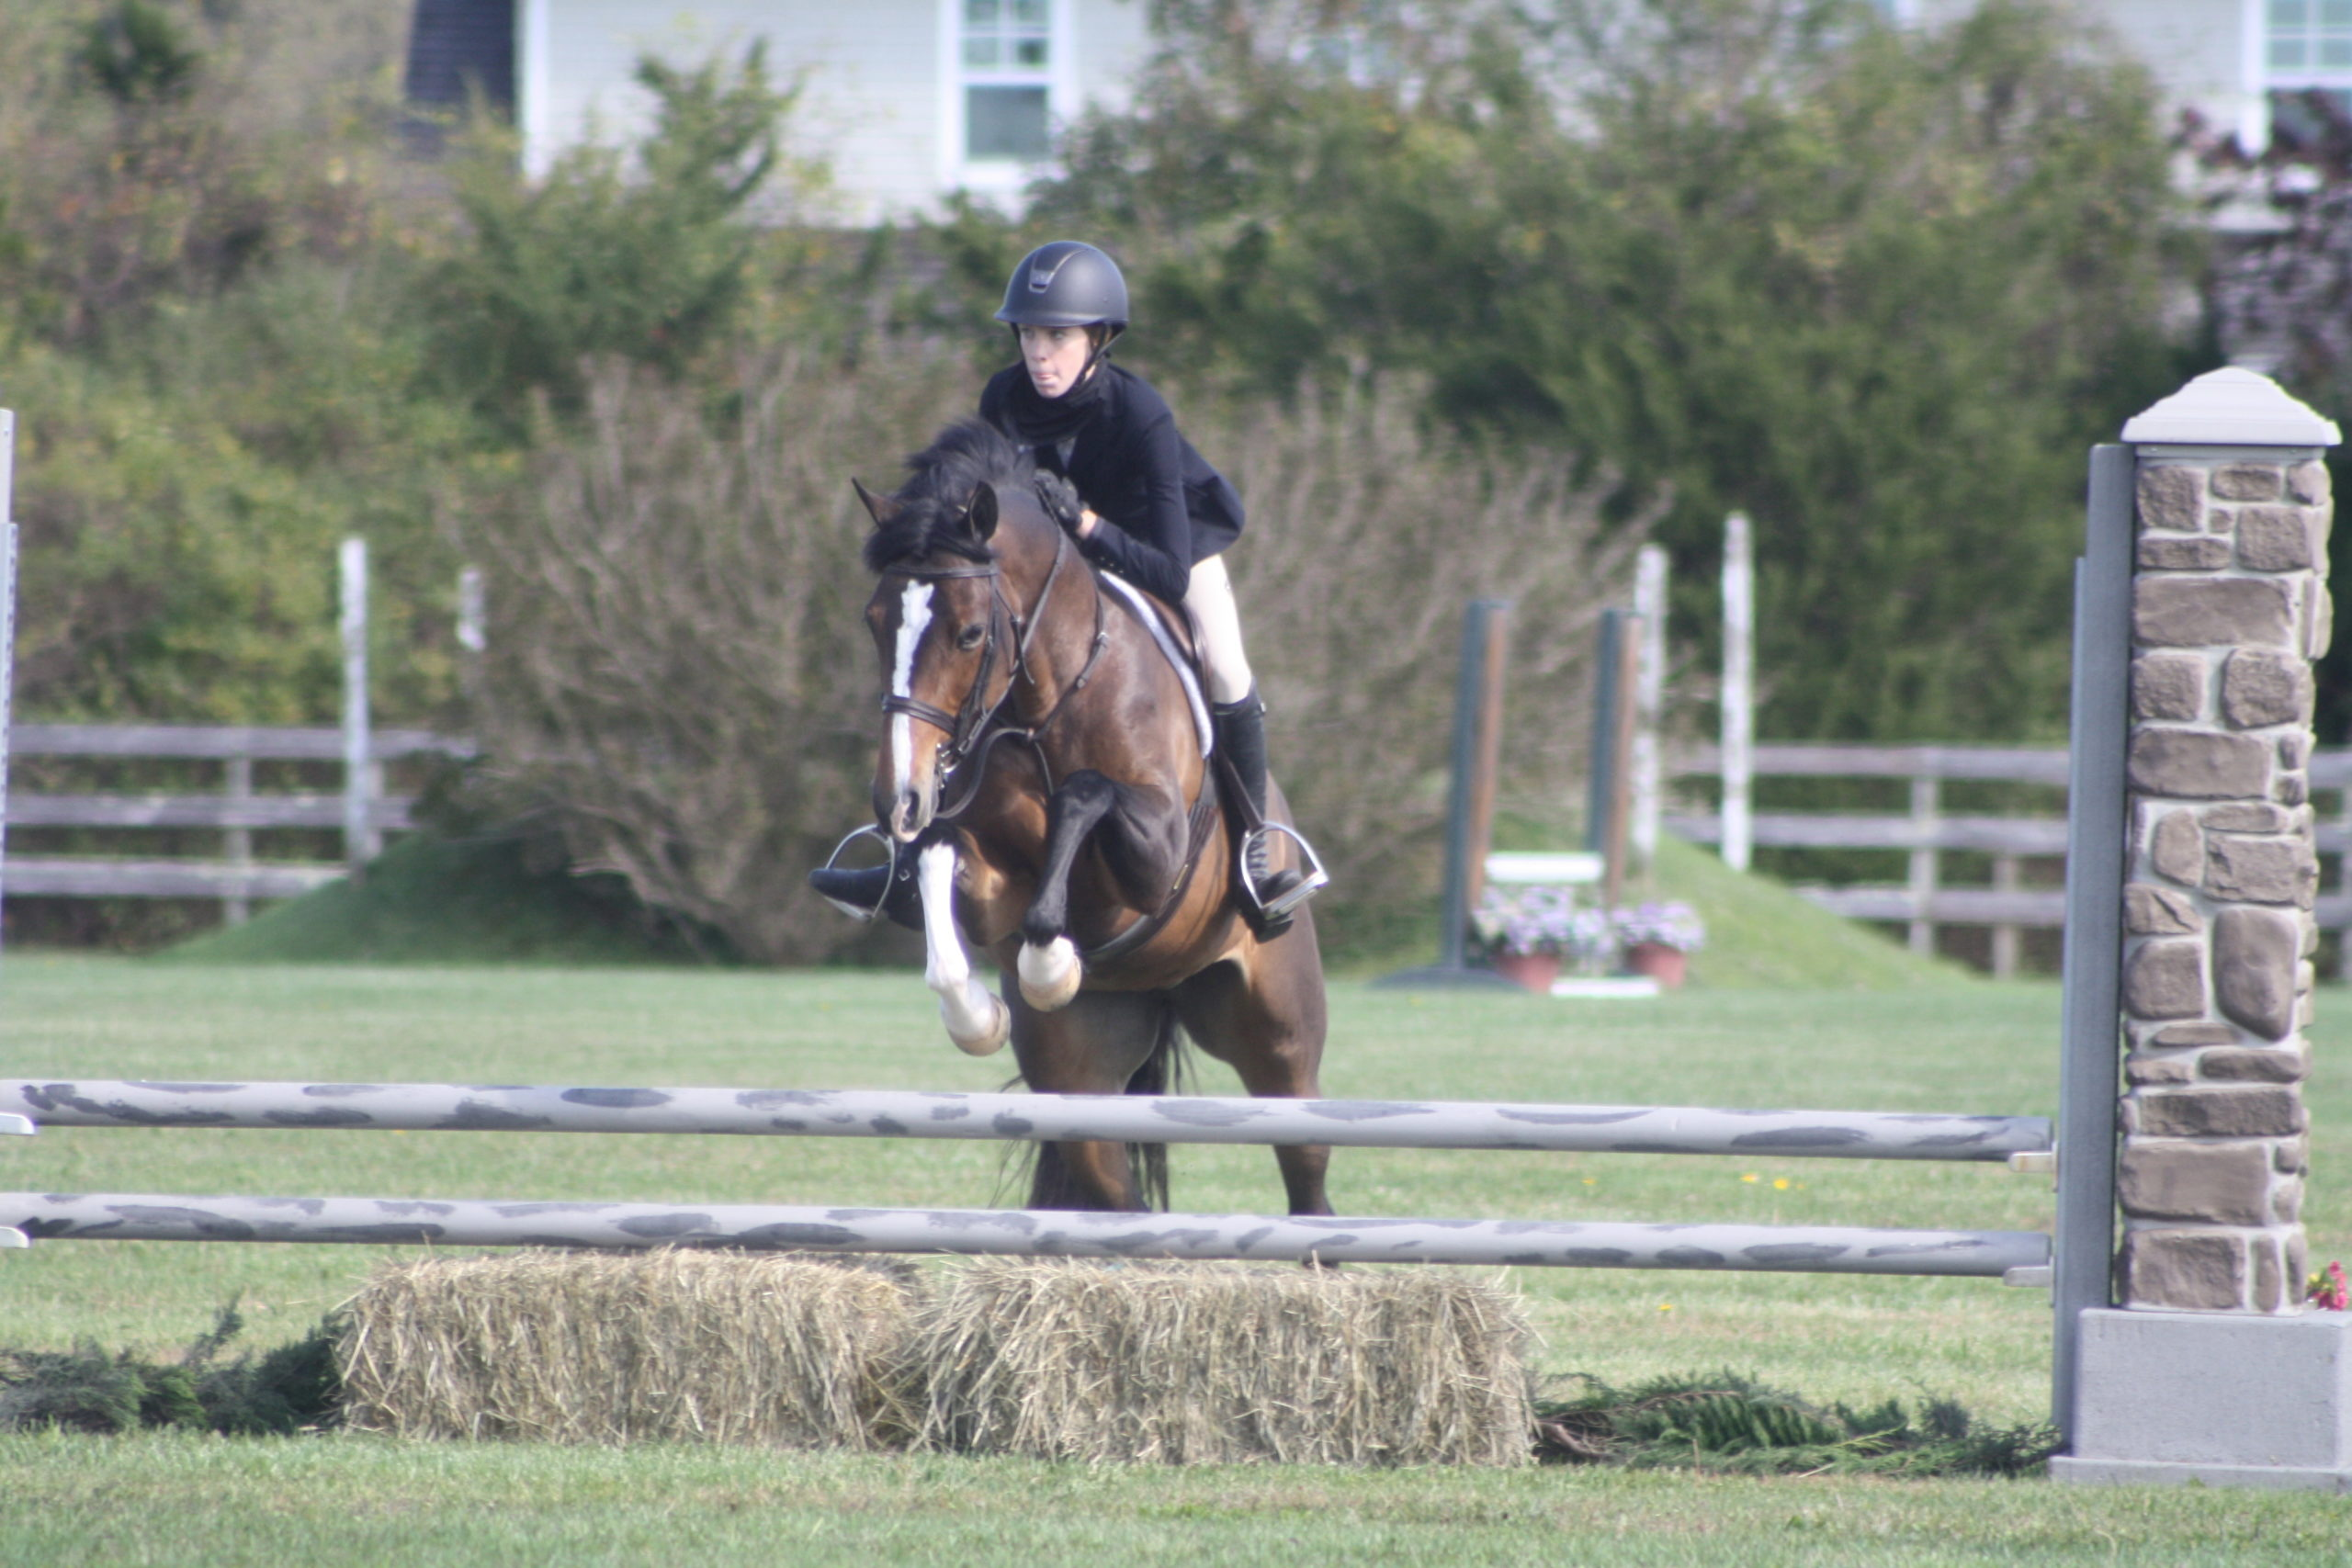 The jumps in the Grand Prix field are meant to mimic elements found in nature.. CAILIN RILEY